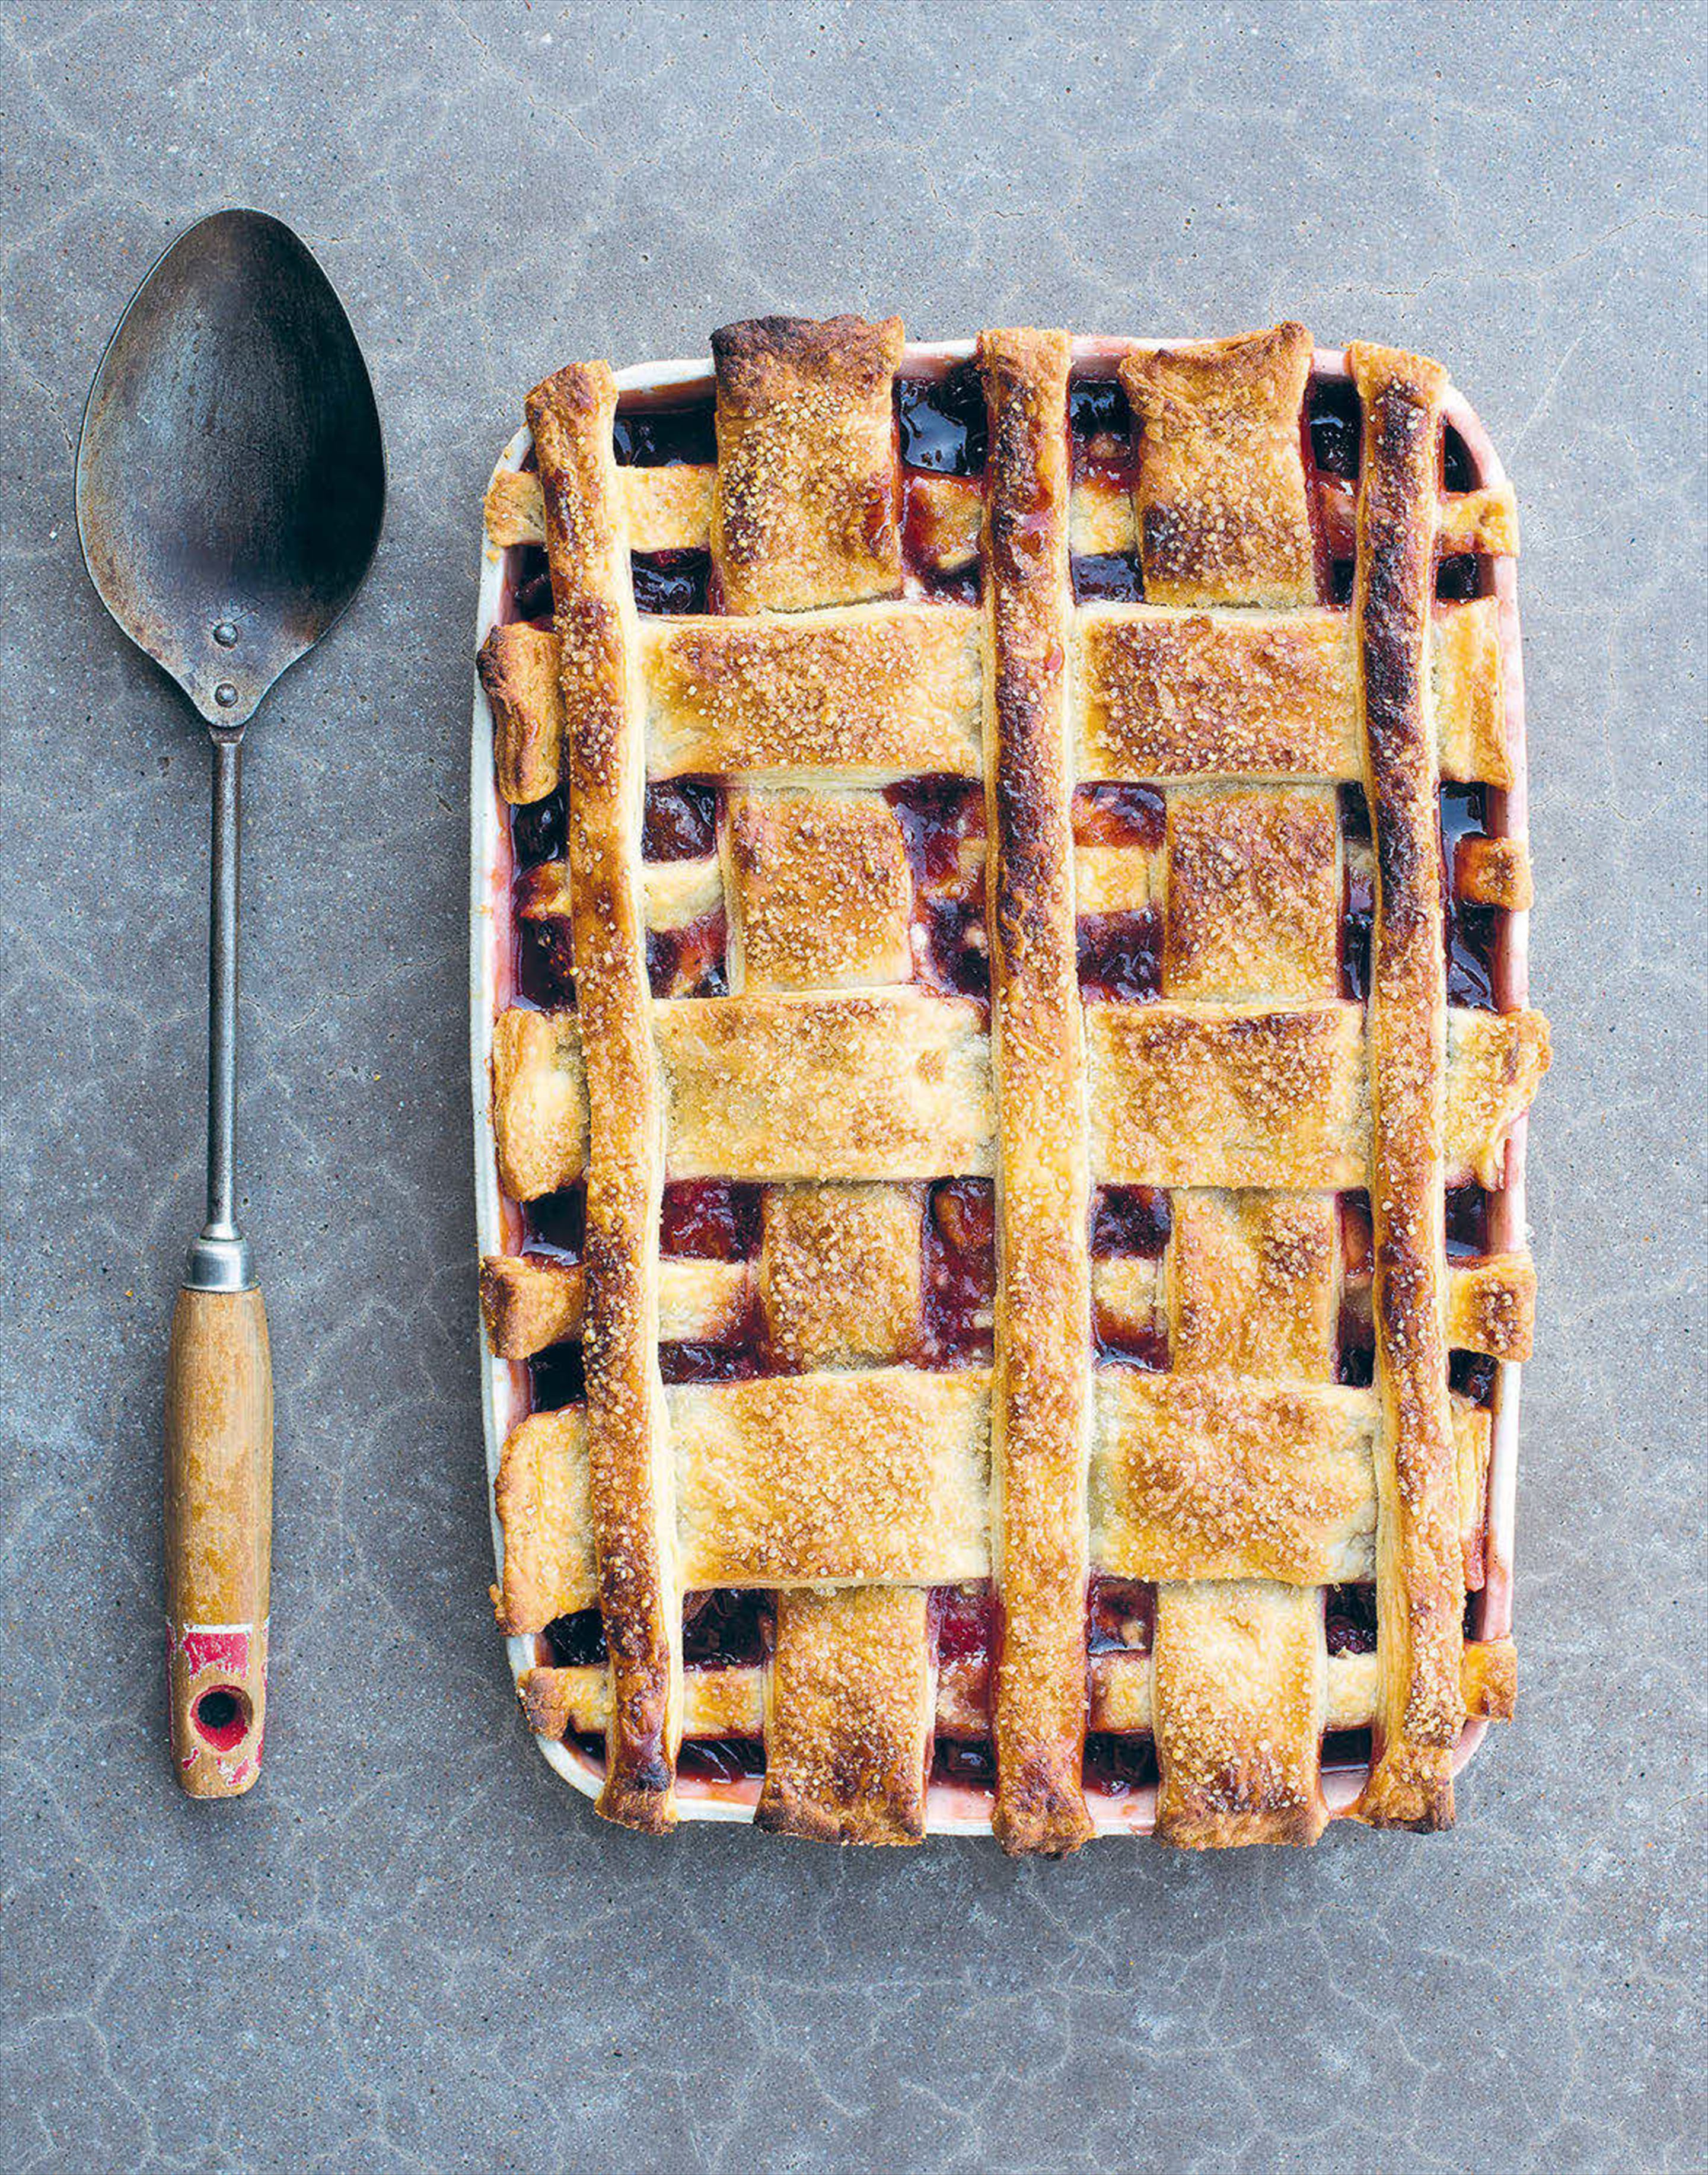 Apple and strawberry jam pie